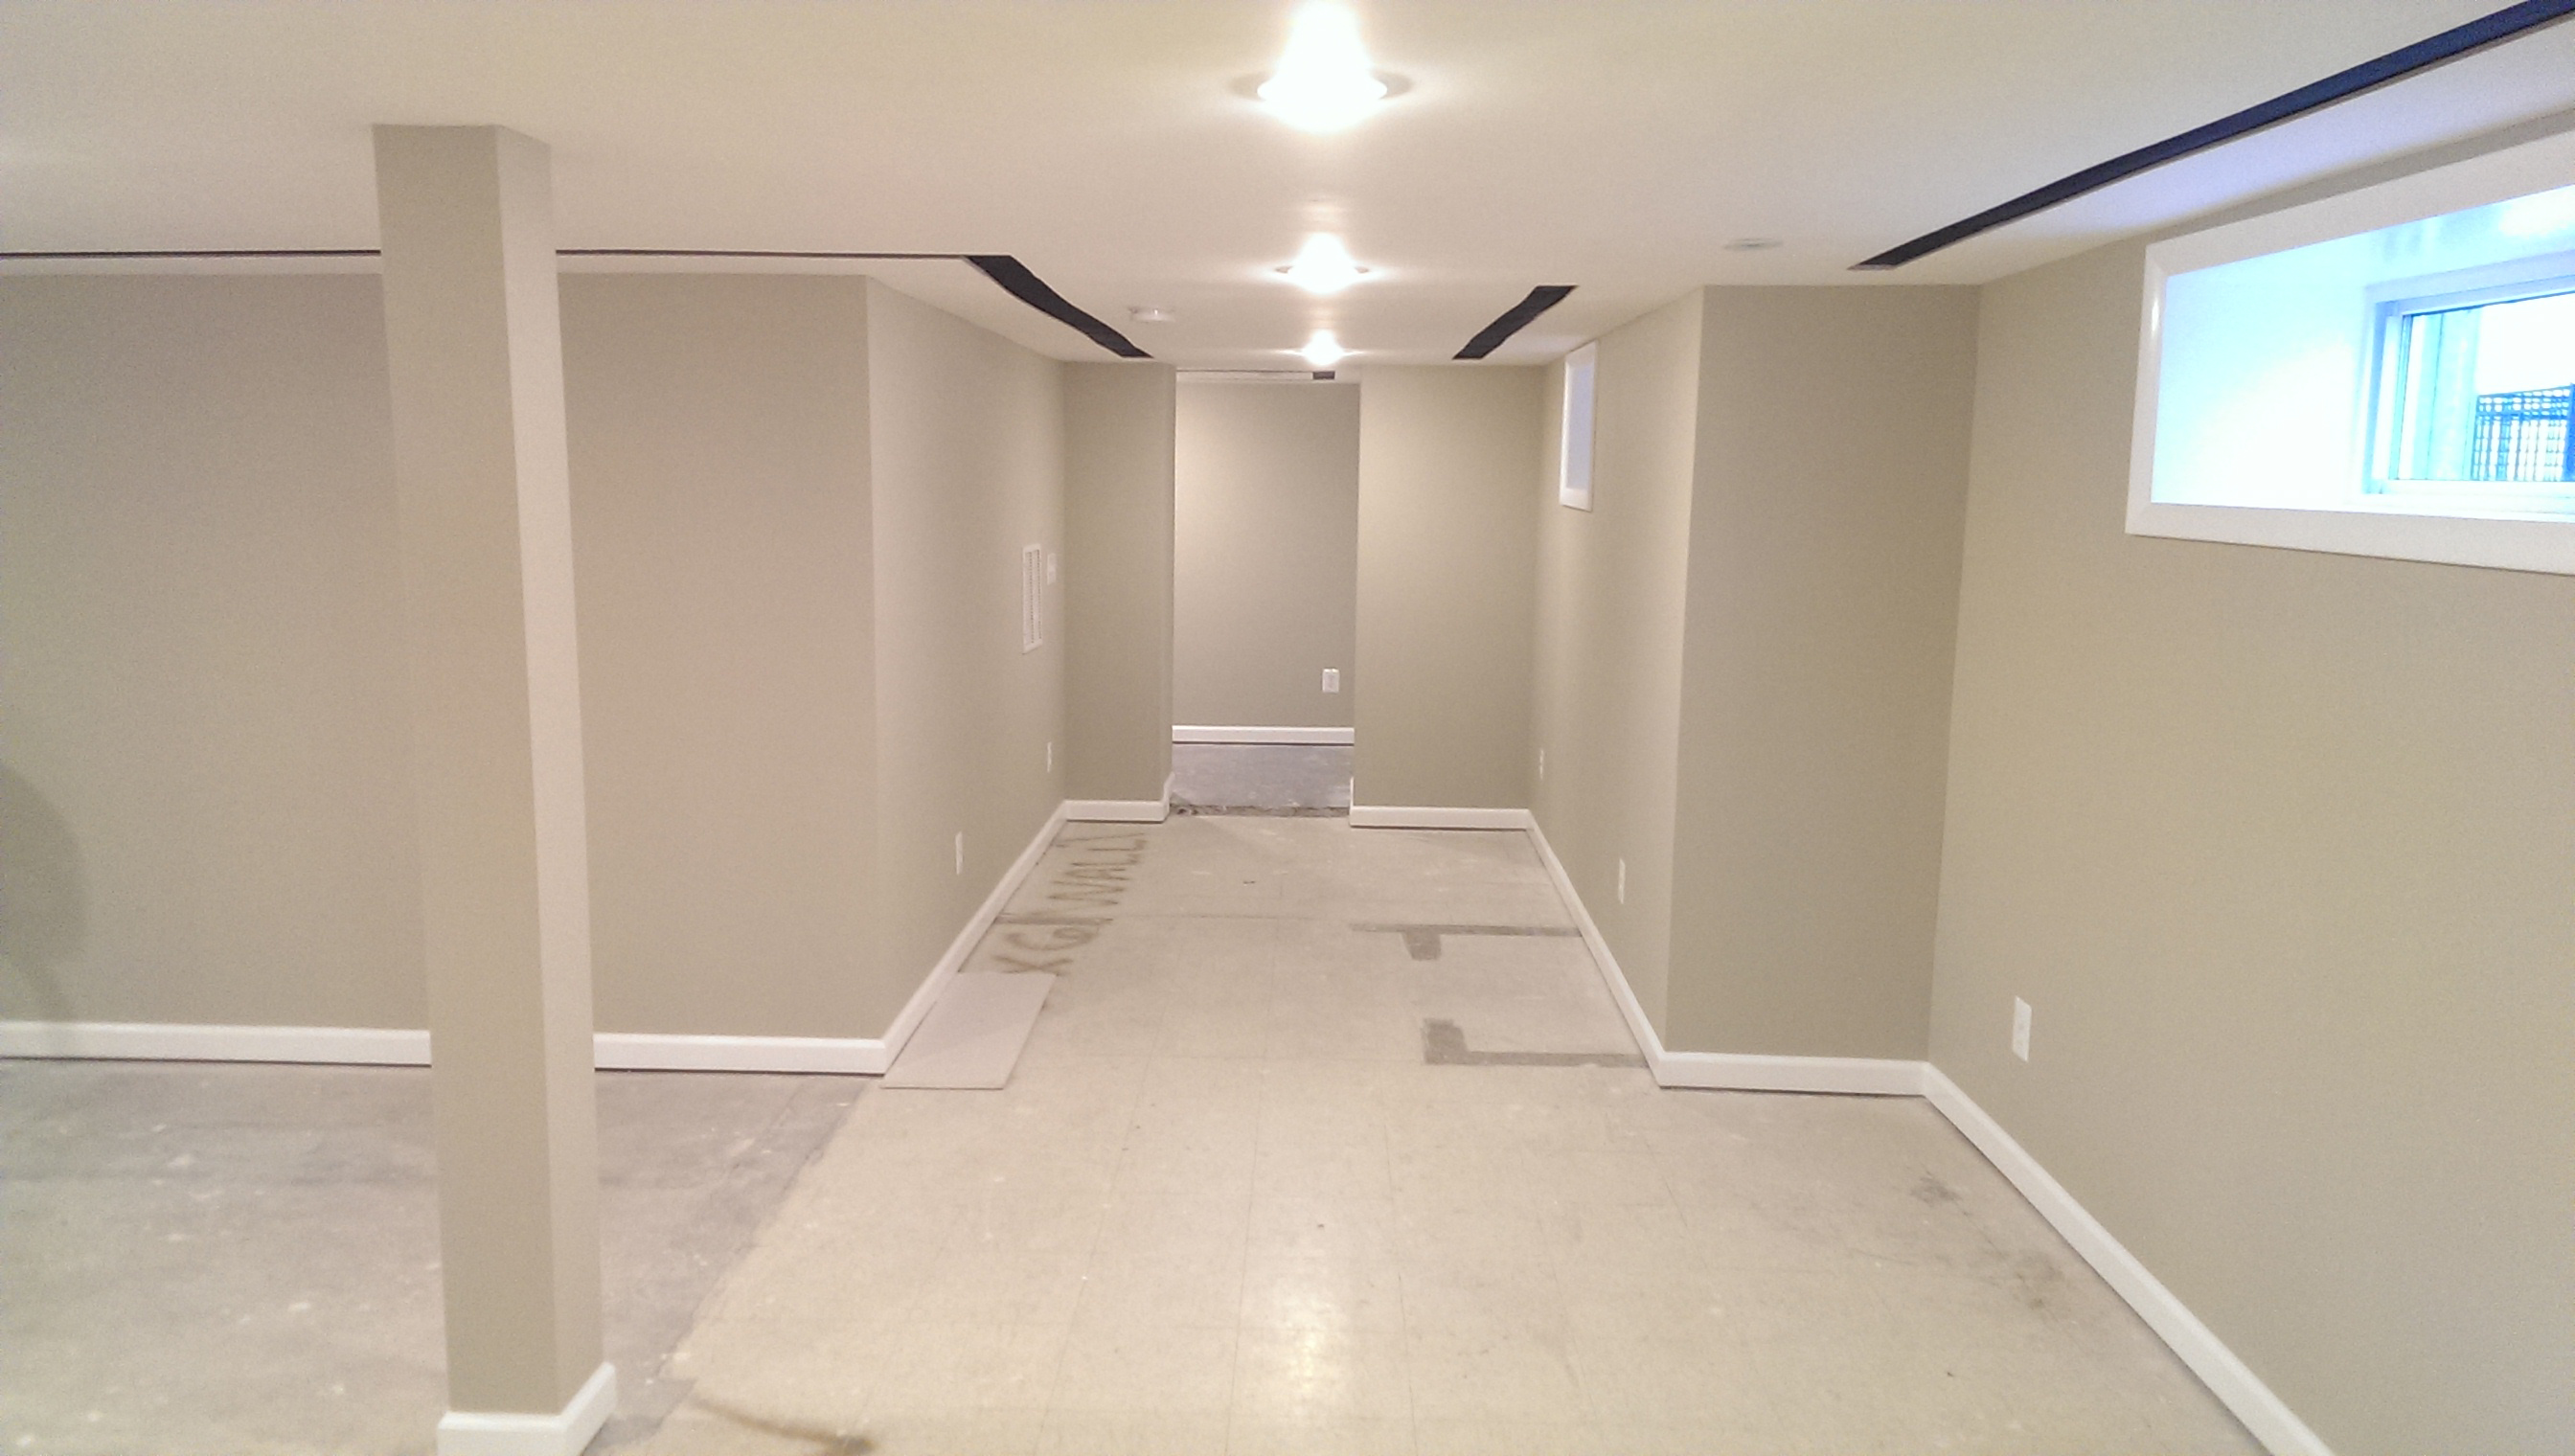 Basement Remodel in Herndon Virginia